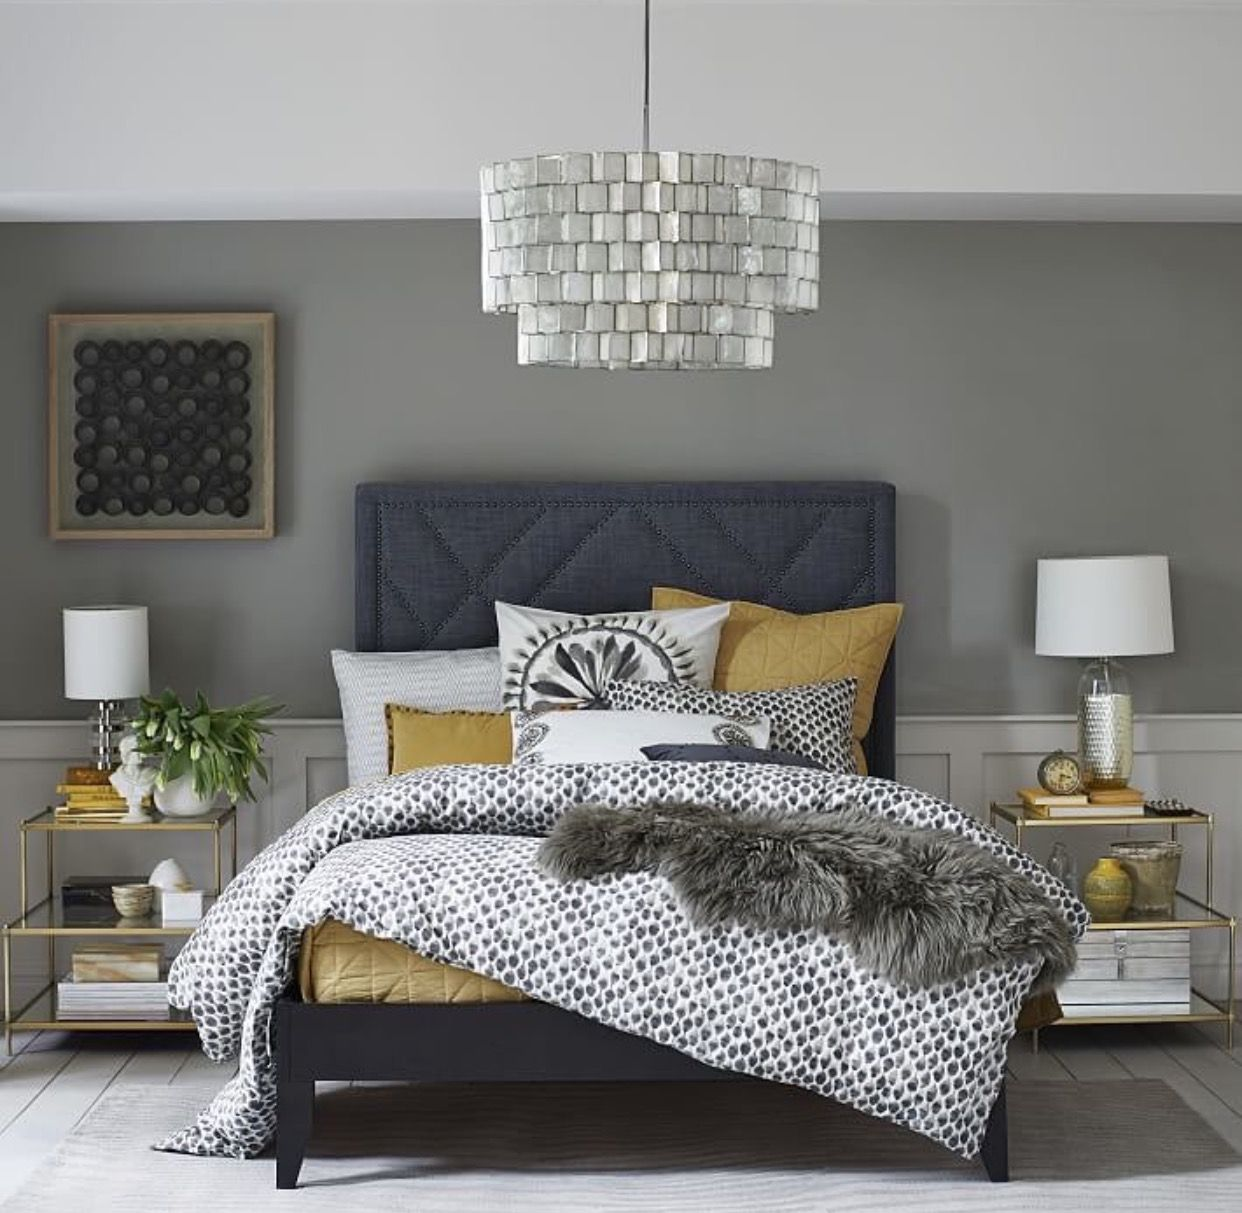 Best Love Shades Of Greys Home Bedroom Remodel Bedroom 400 x 300